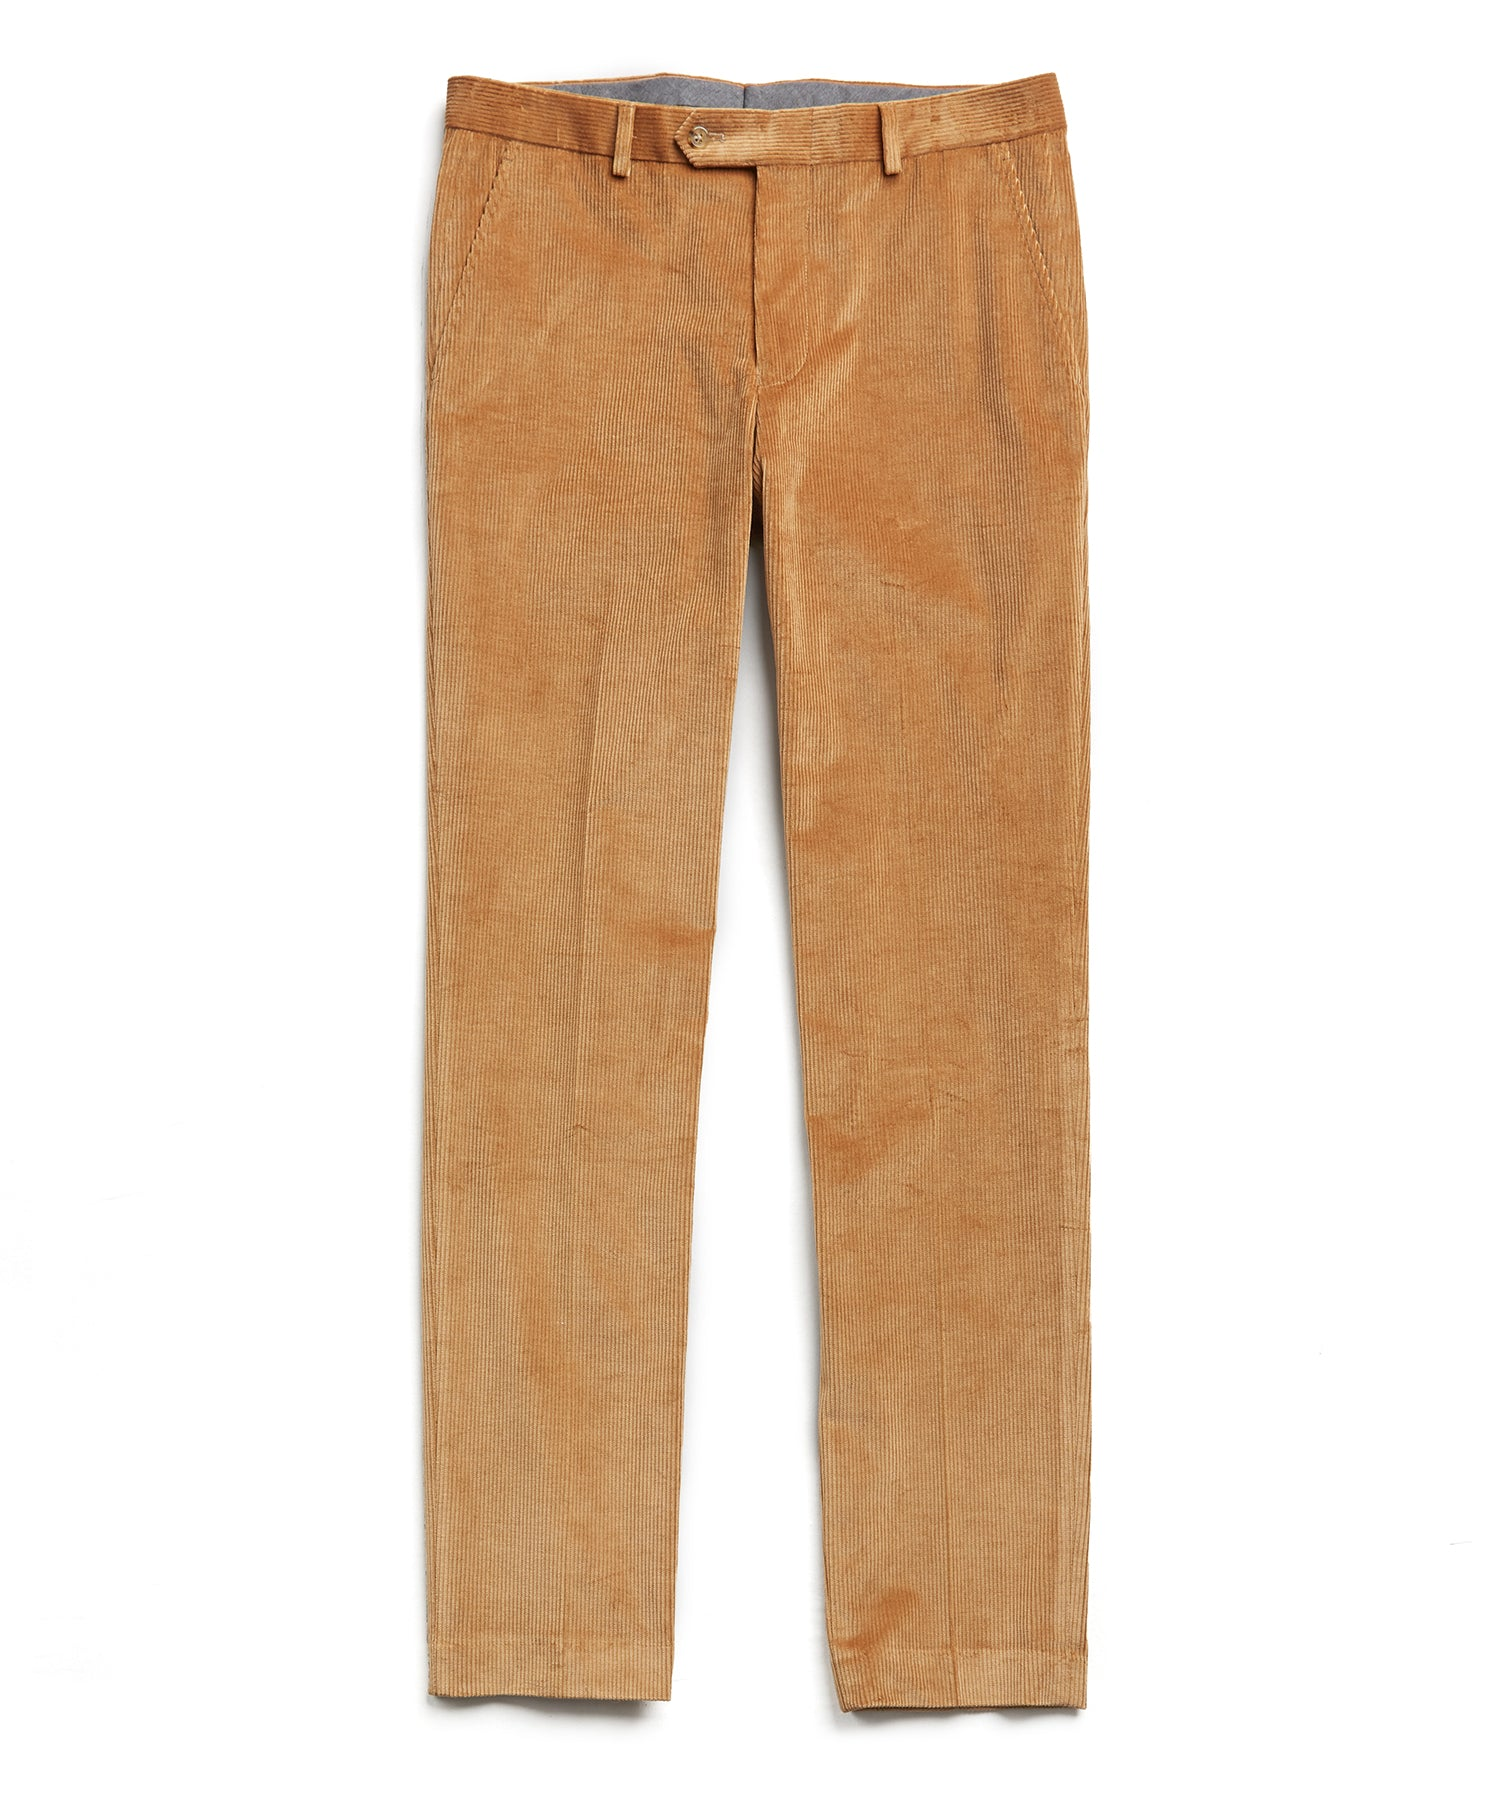 Sutton Corduroy Trouser in Mocha